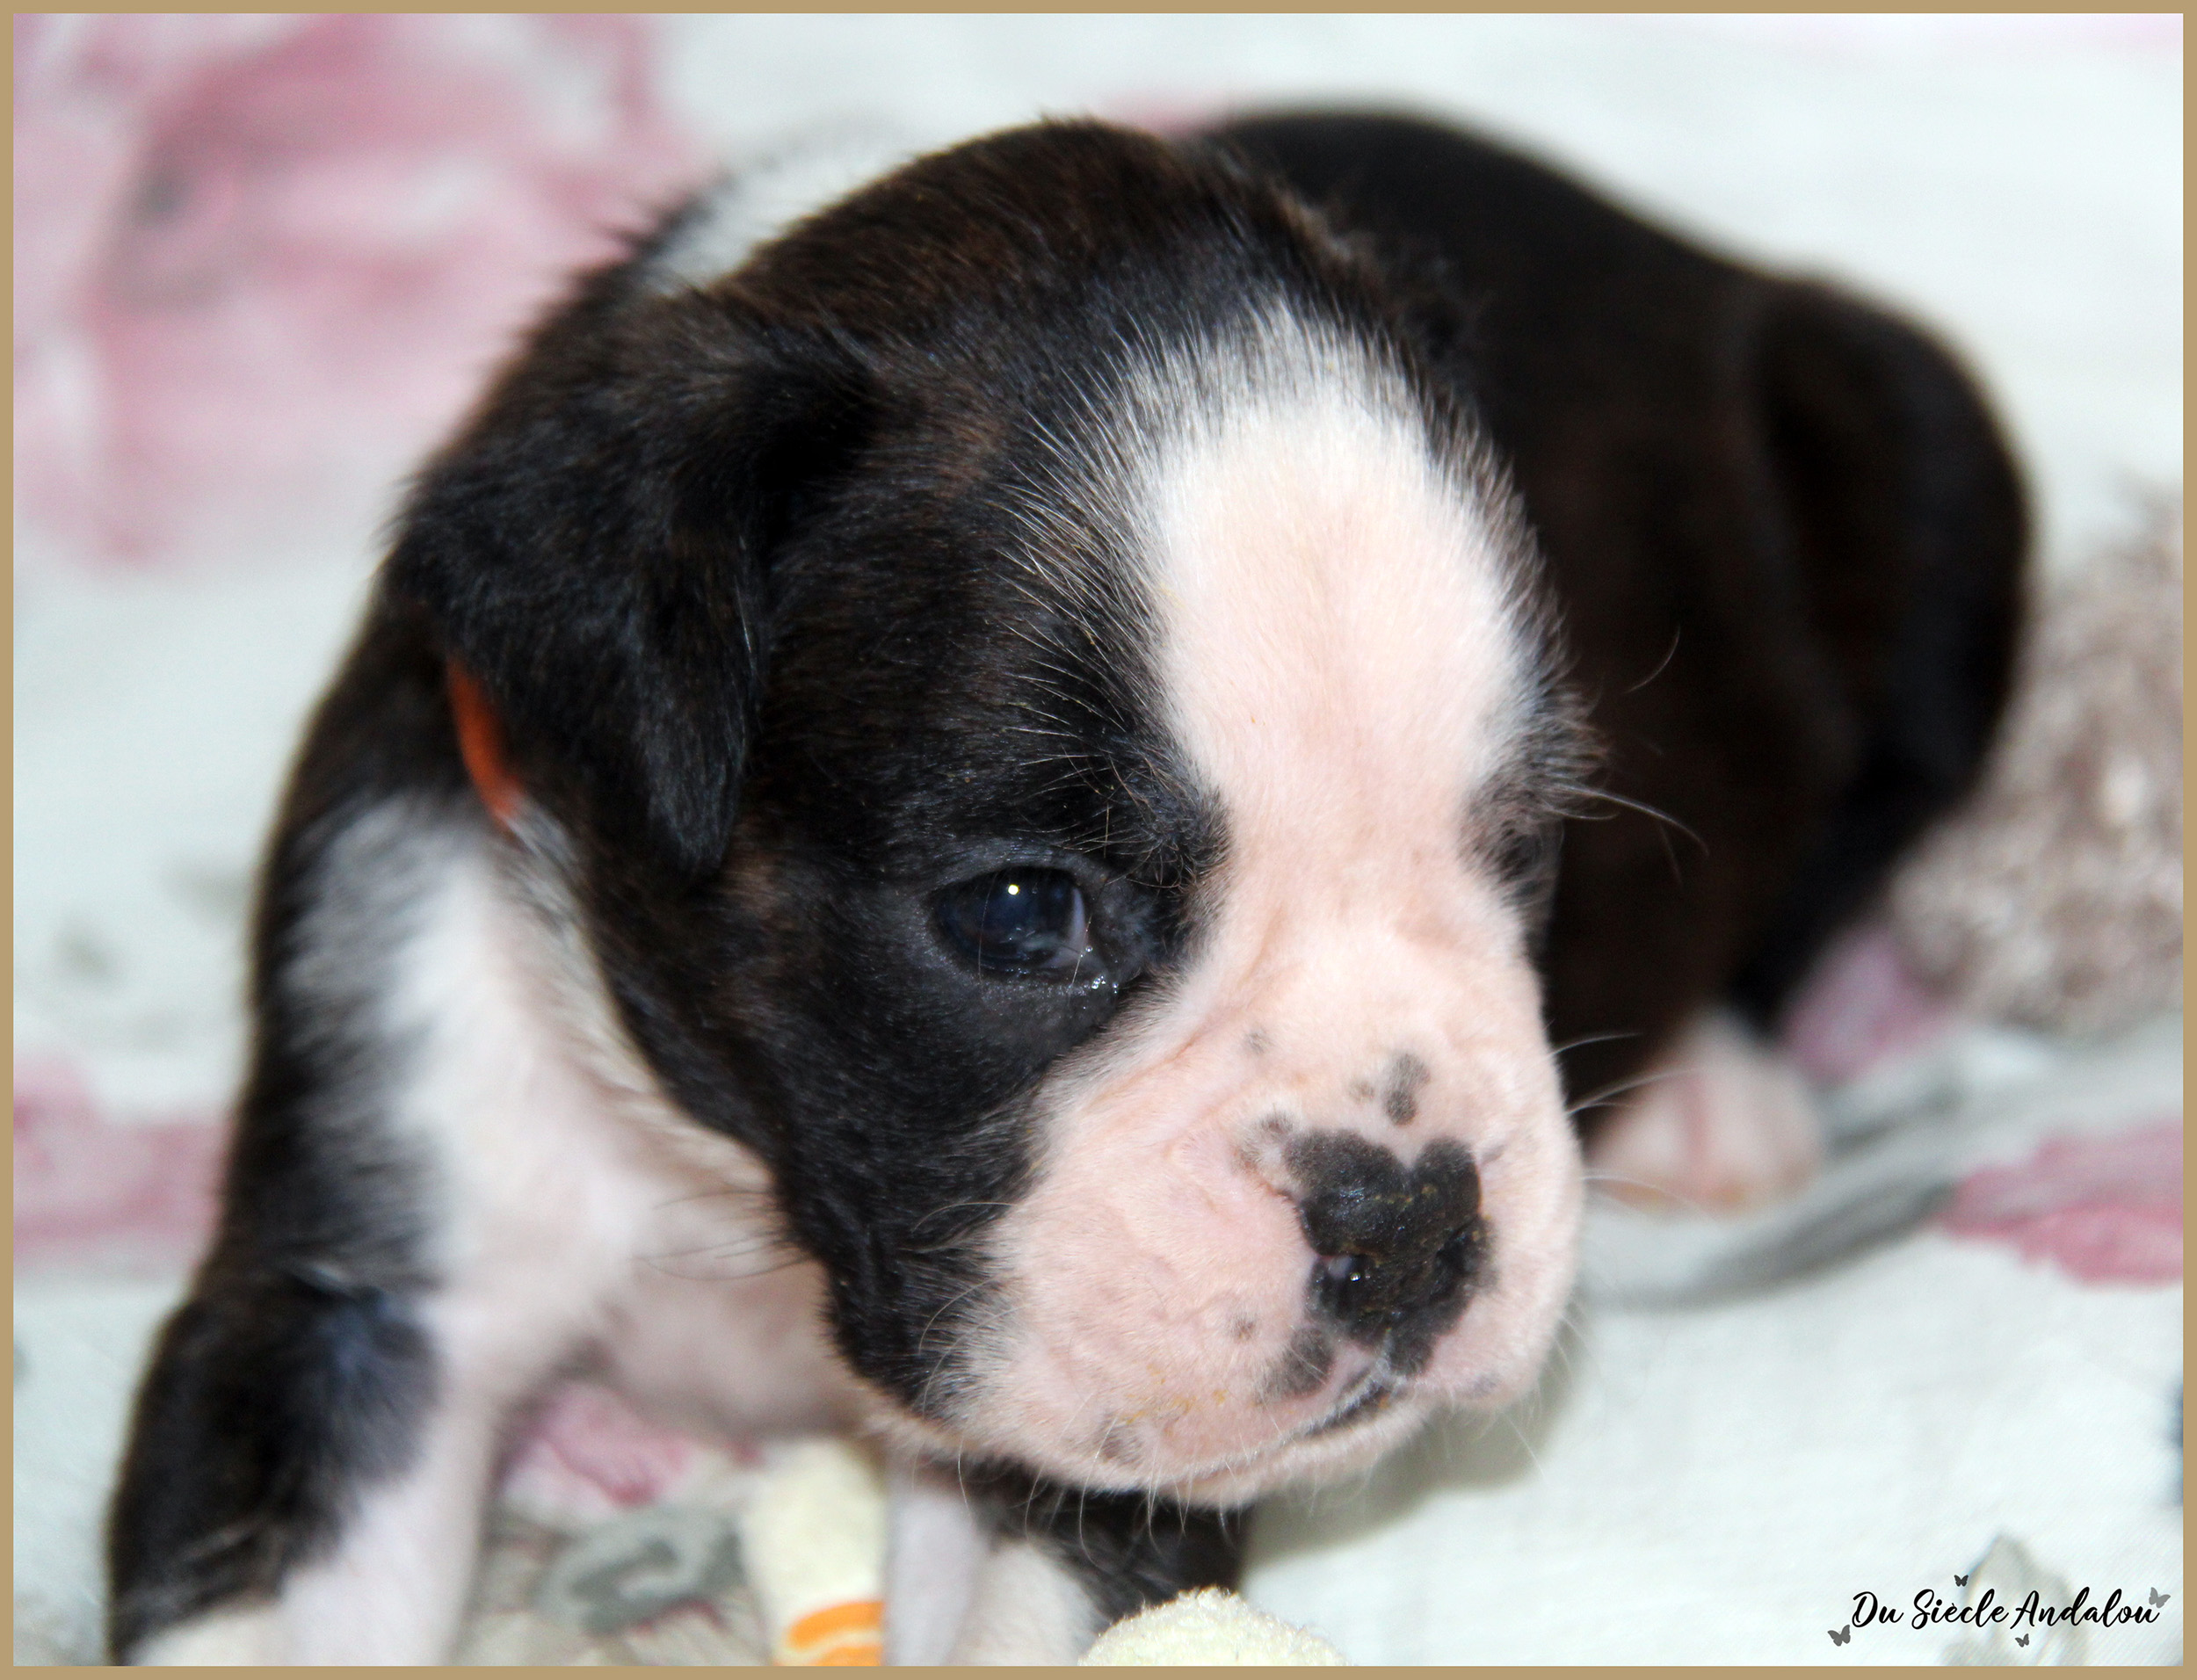 Paddy, 26 Jours